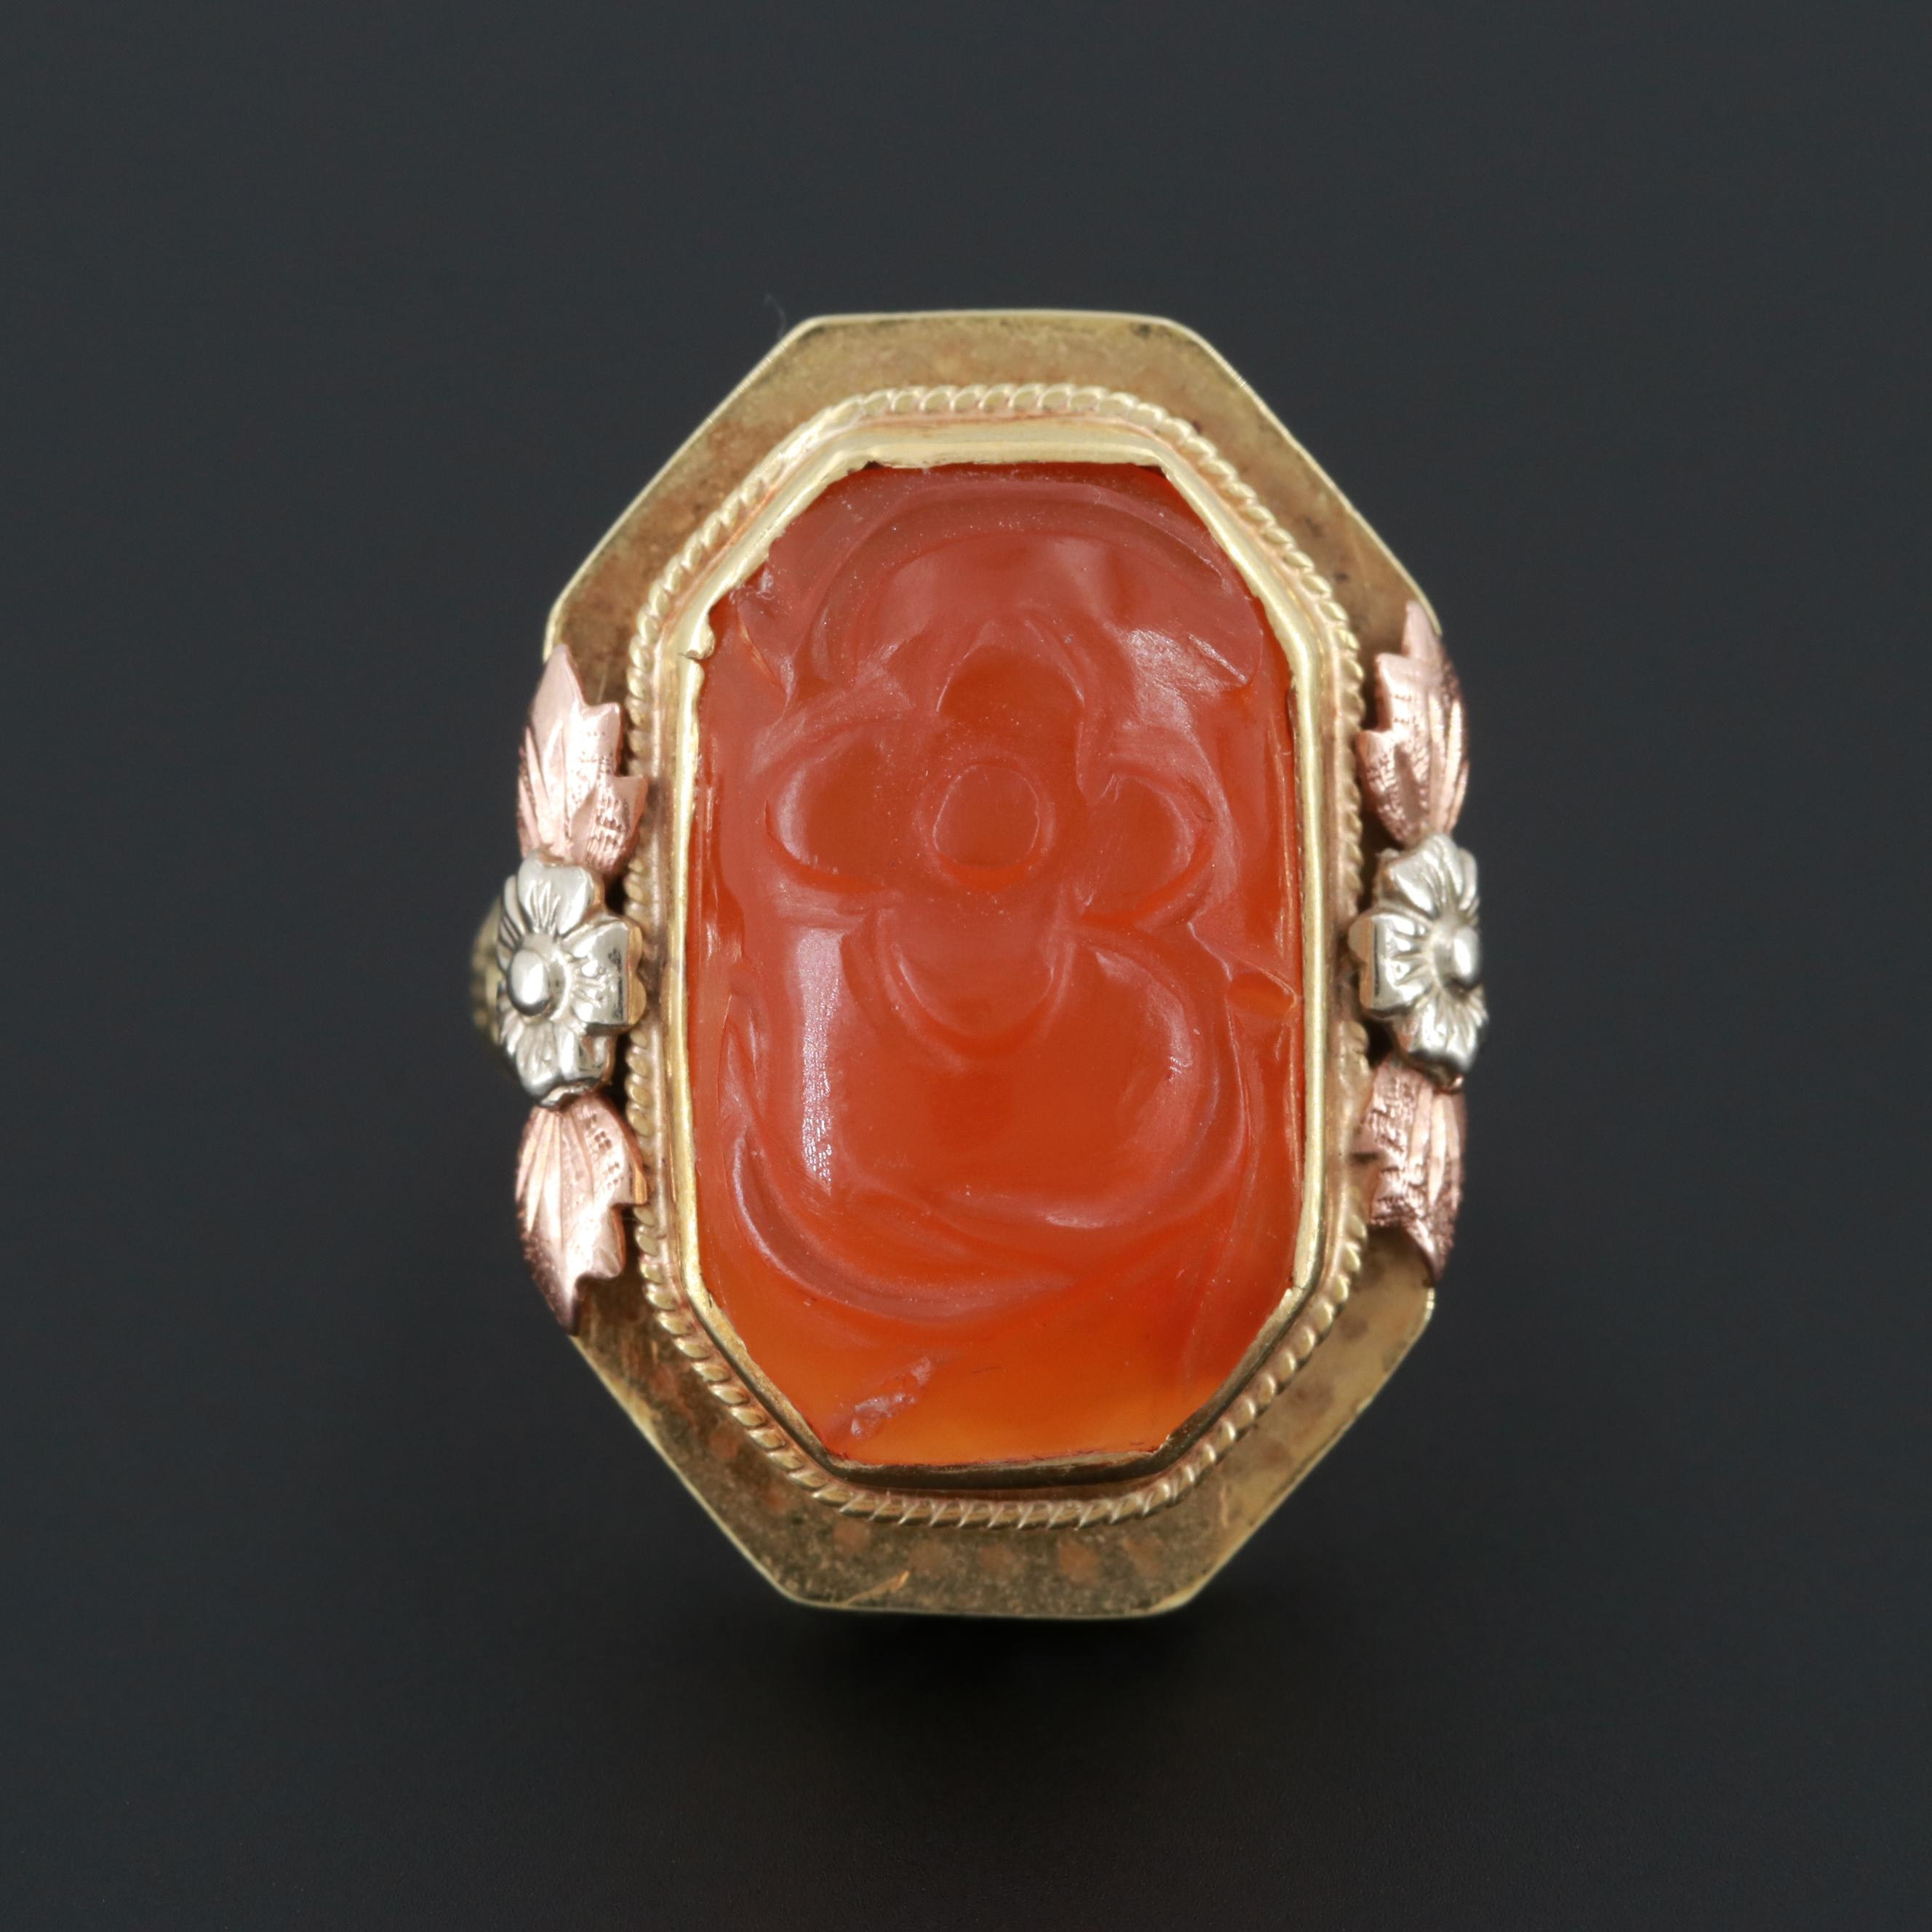 Victorian 14K Yellow Gold Carnelian Ring with Rose and White Gold Accents